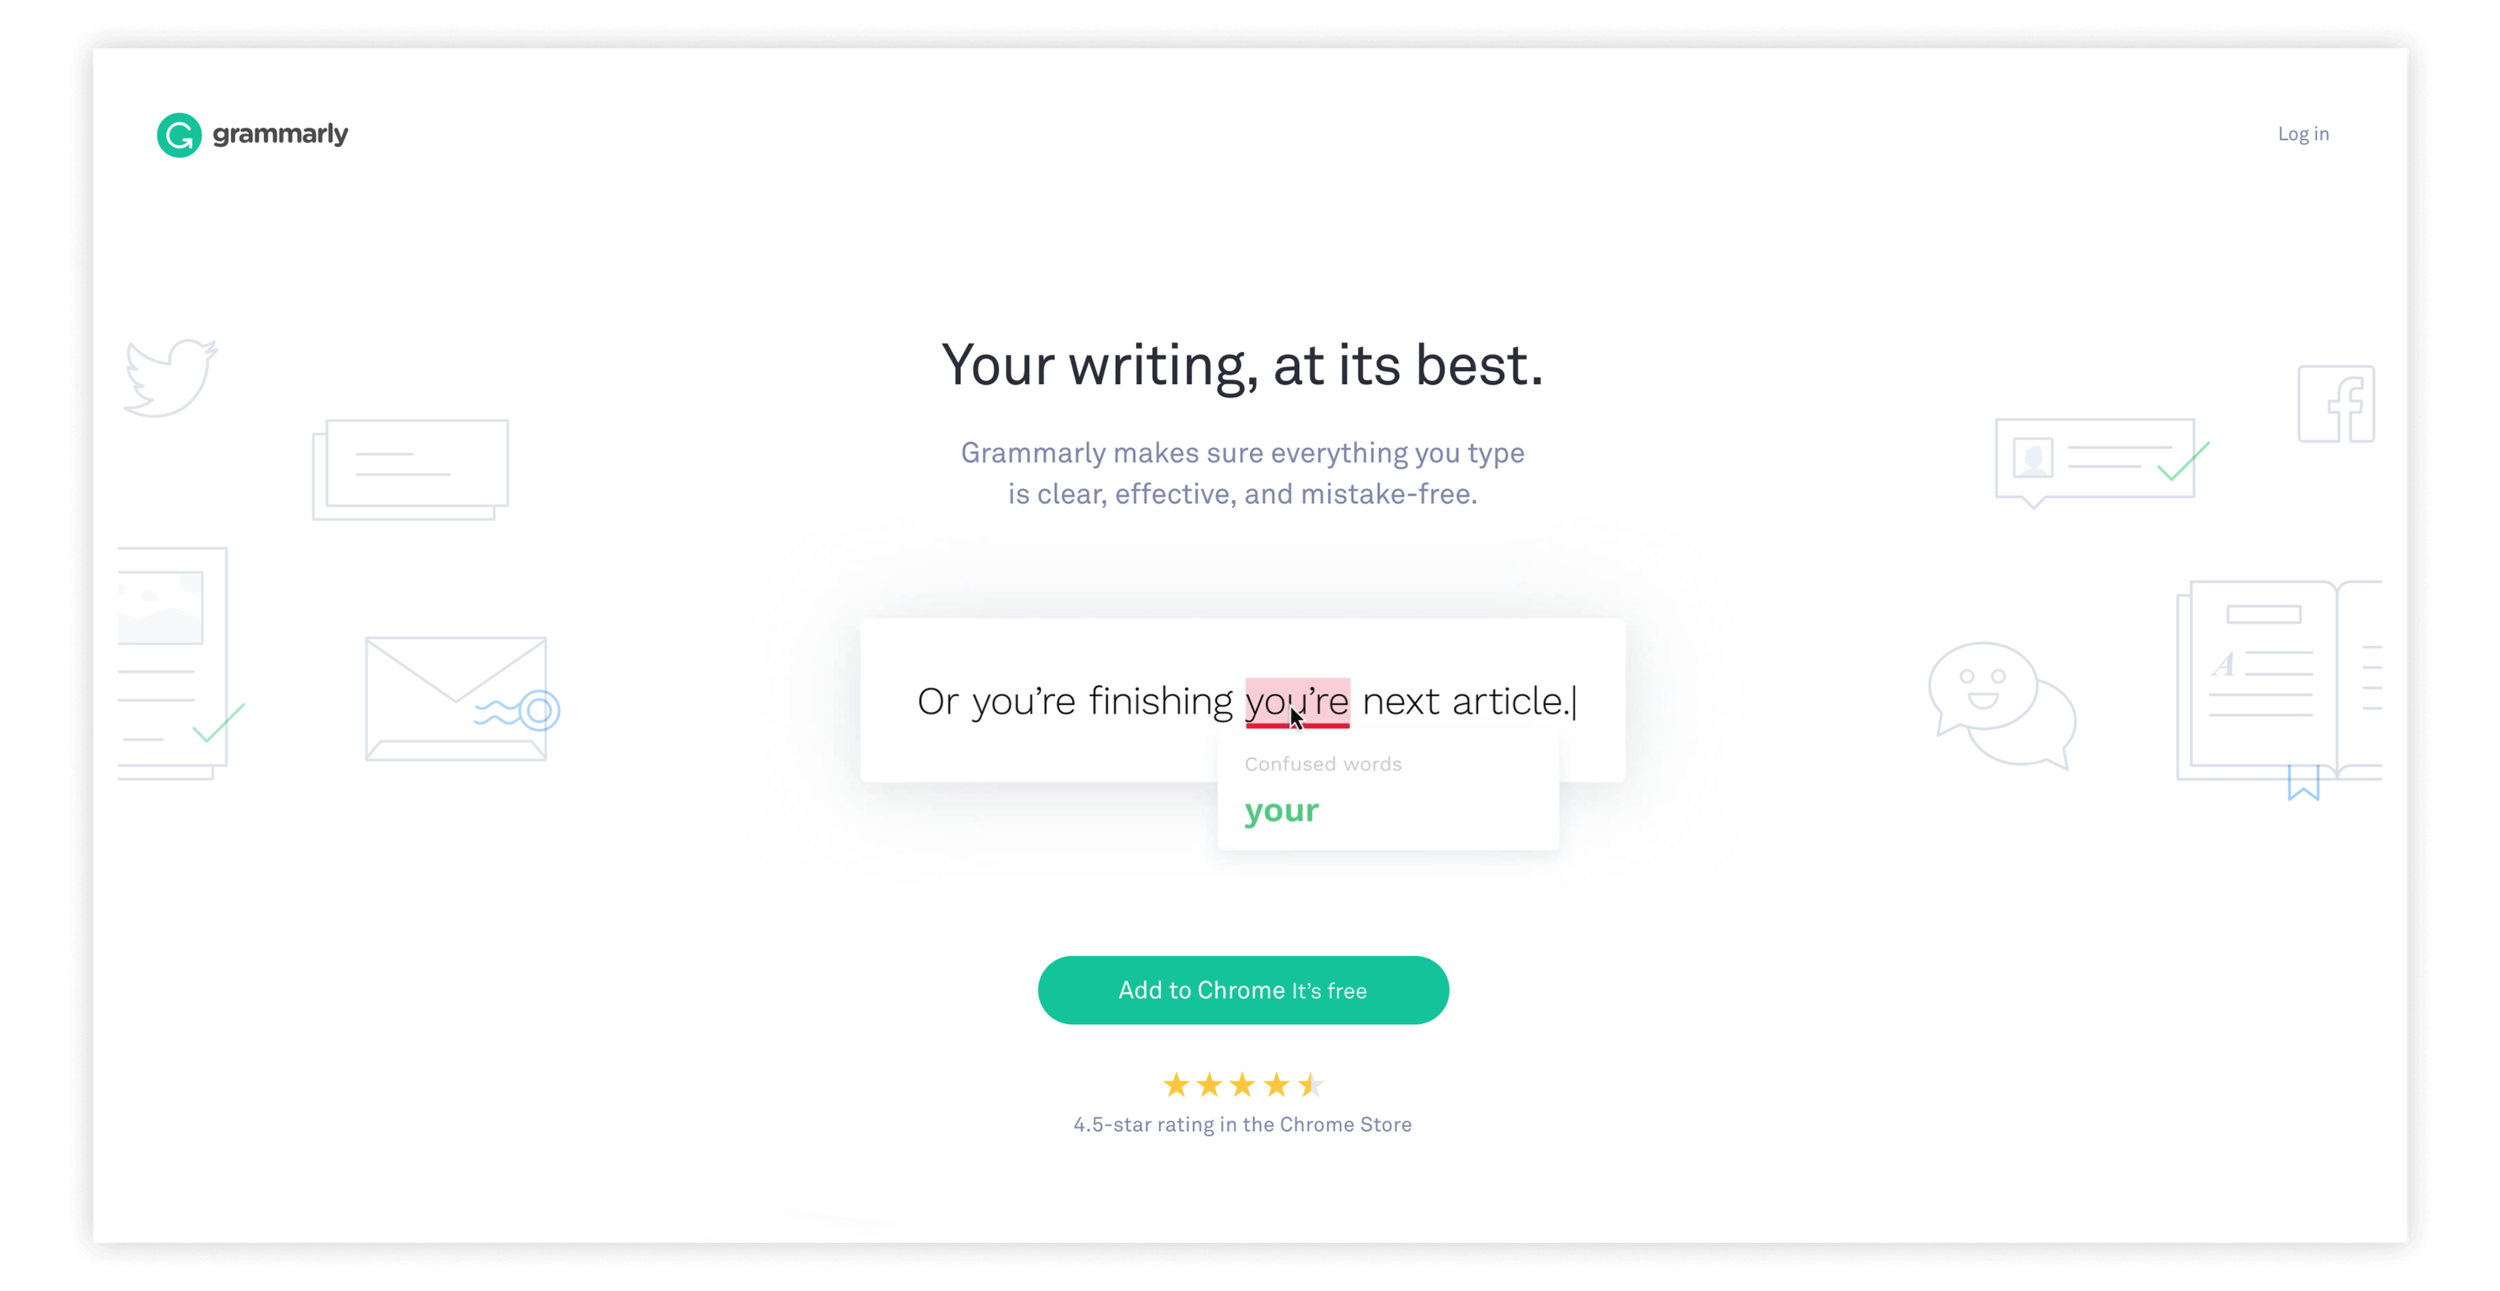 Grammarly - great example of copy use